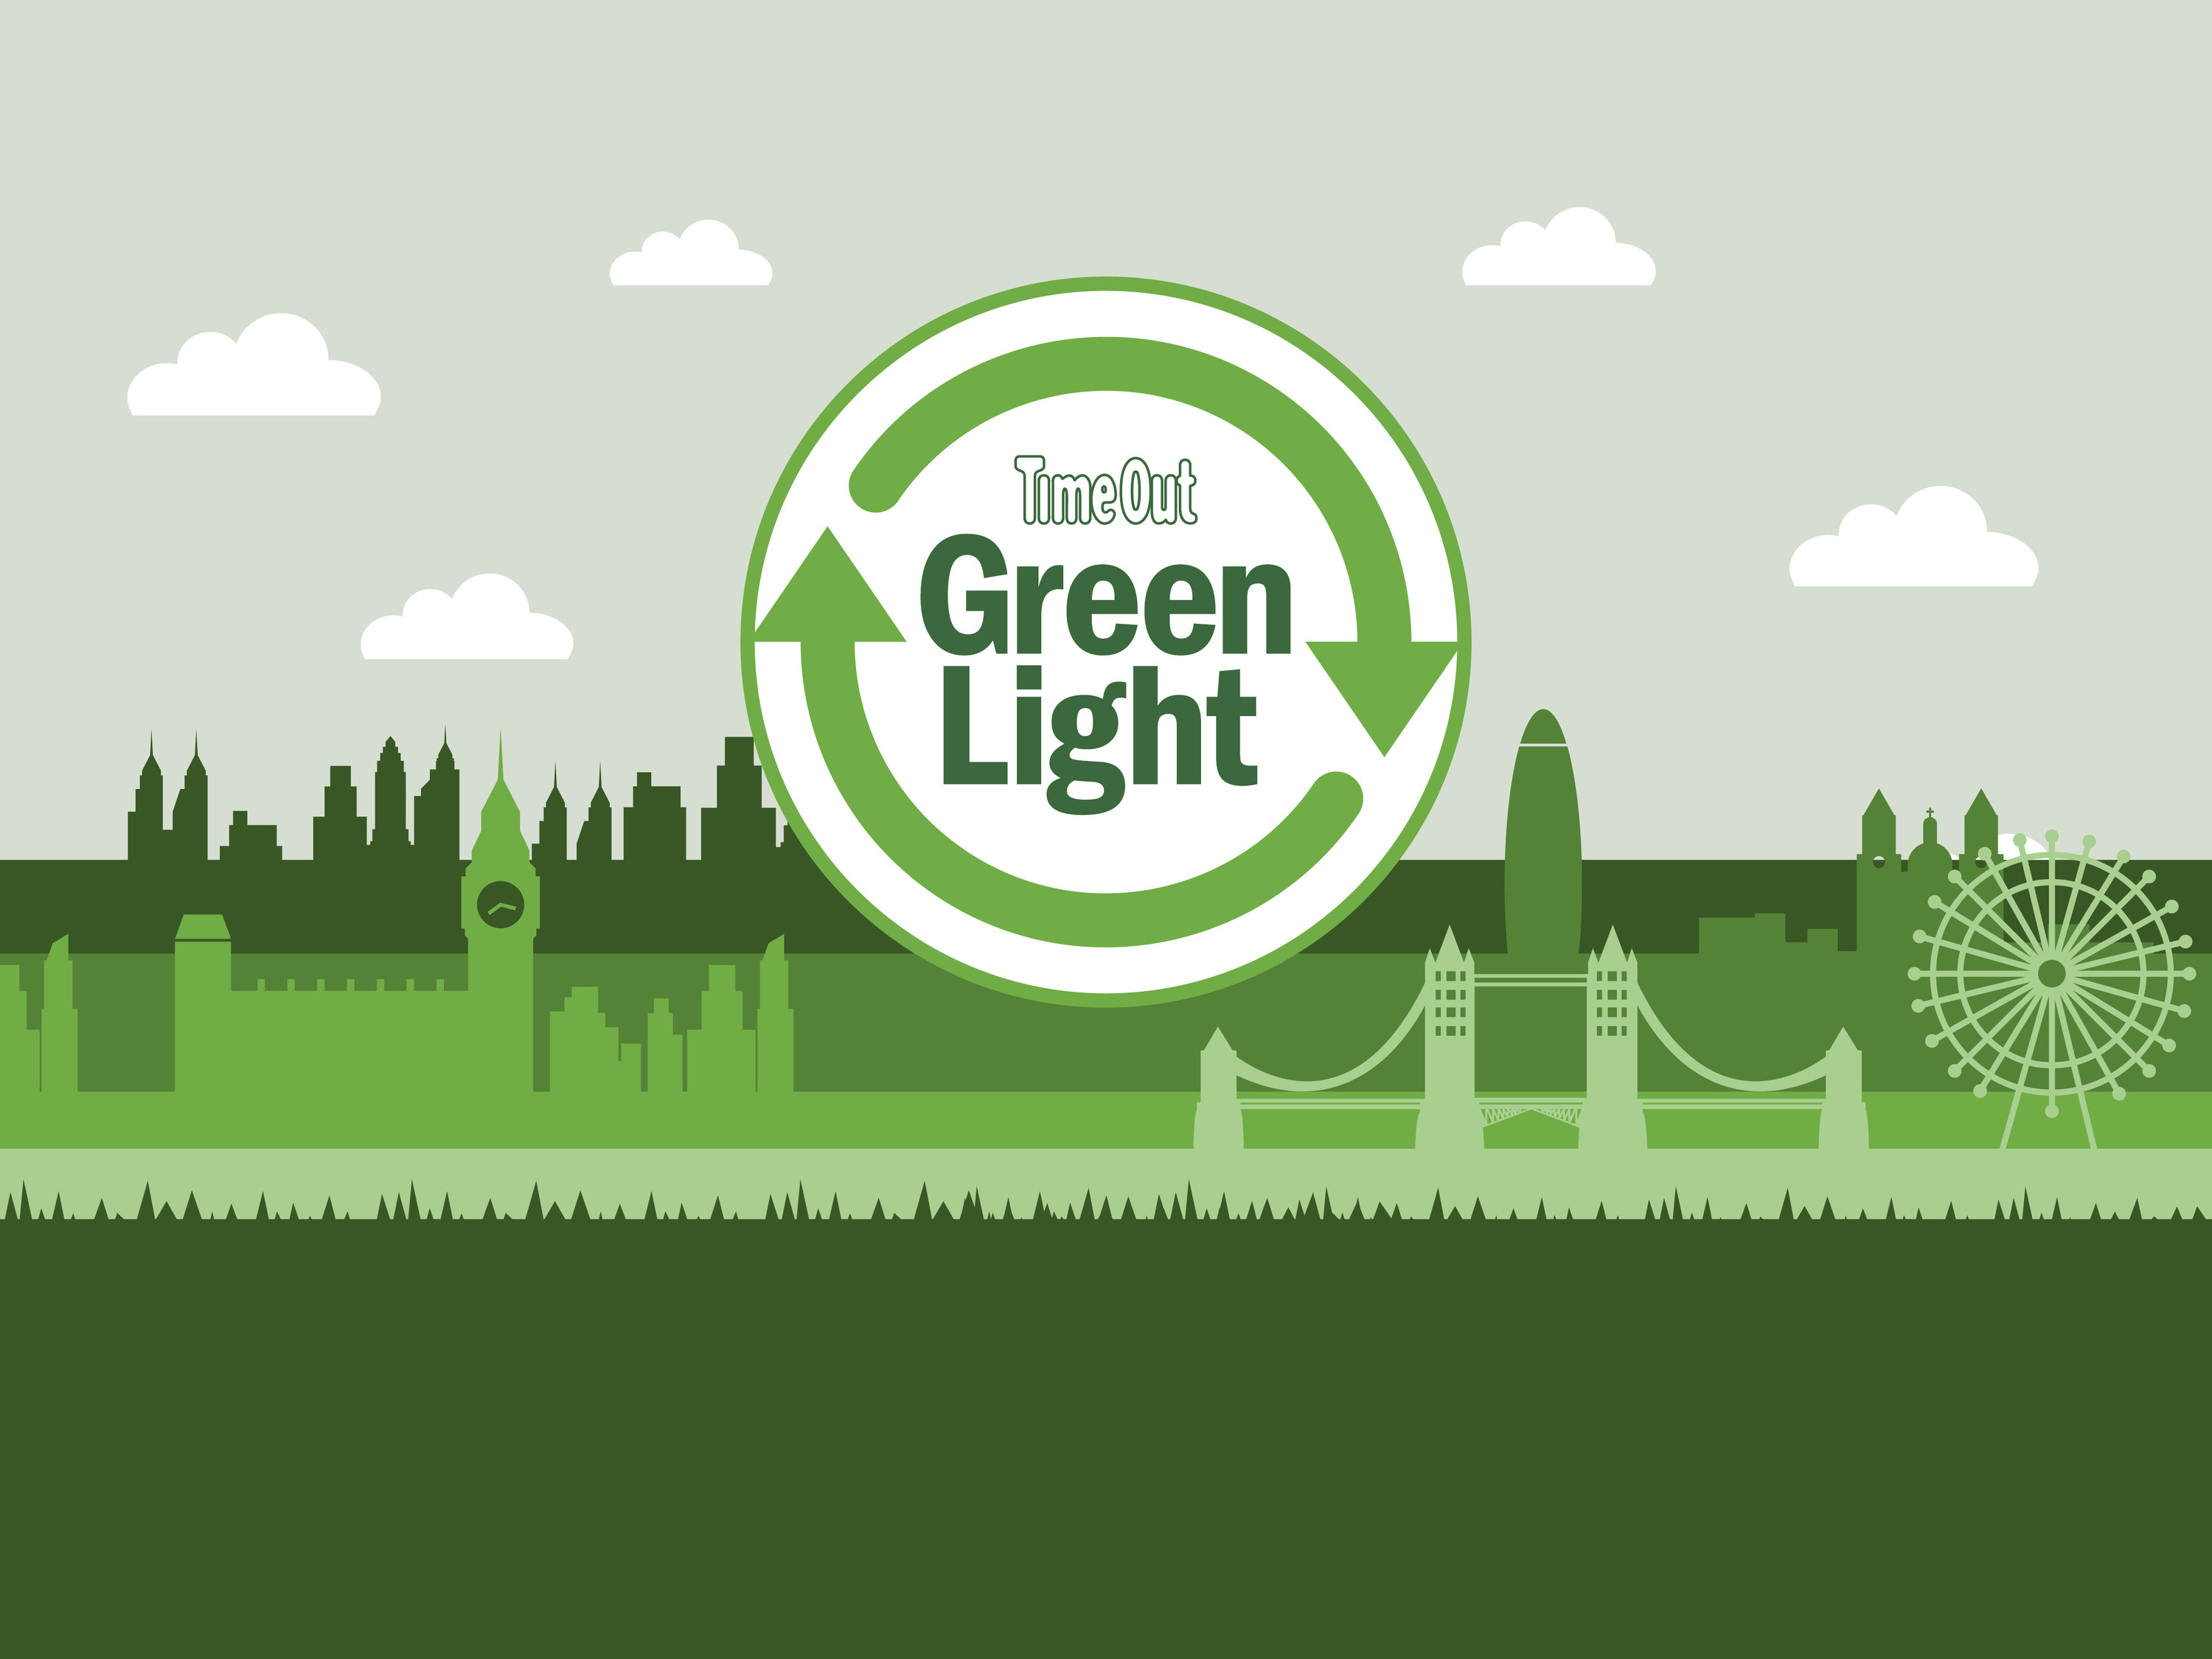 How to build a green city logo